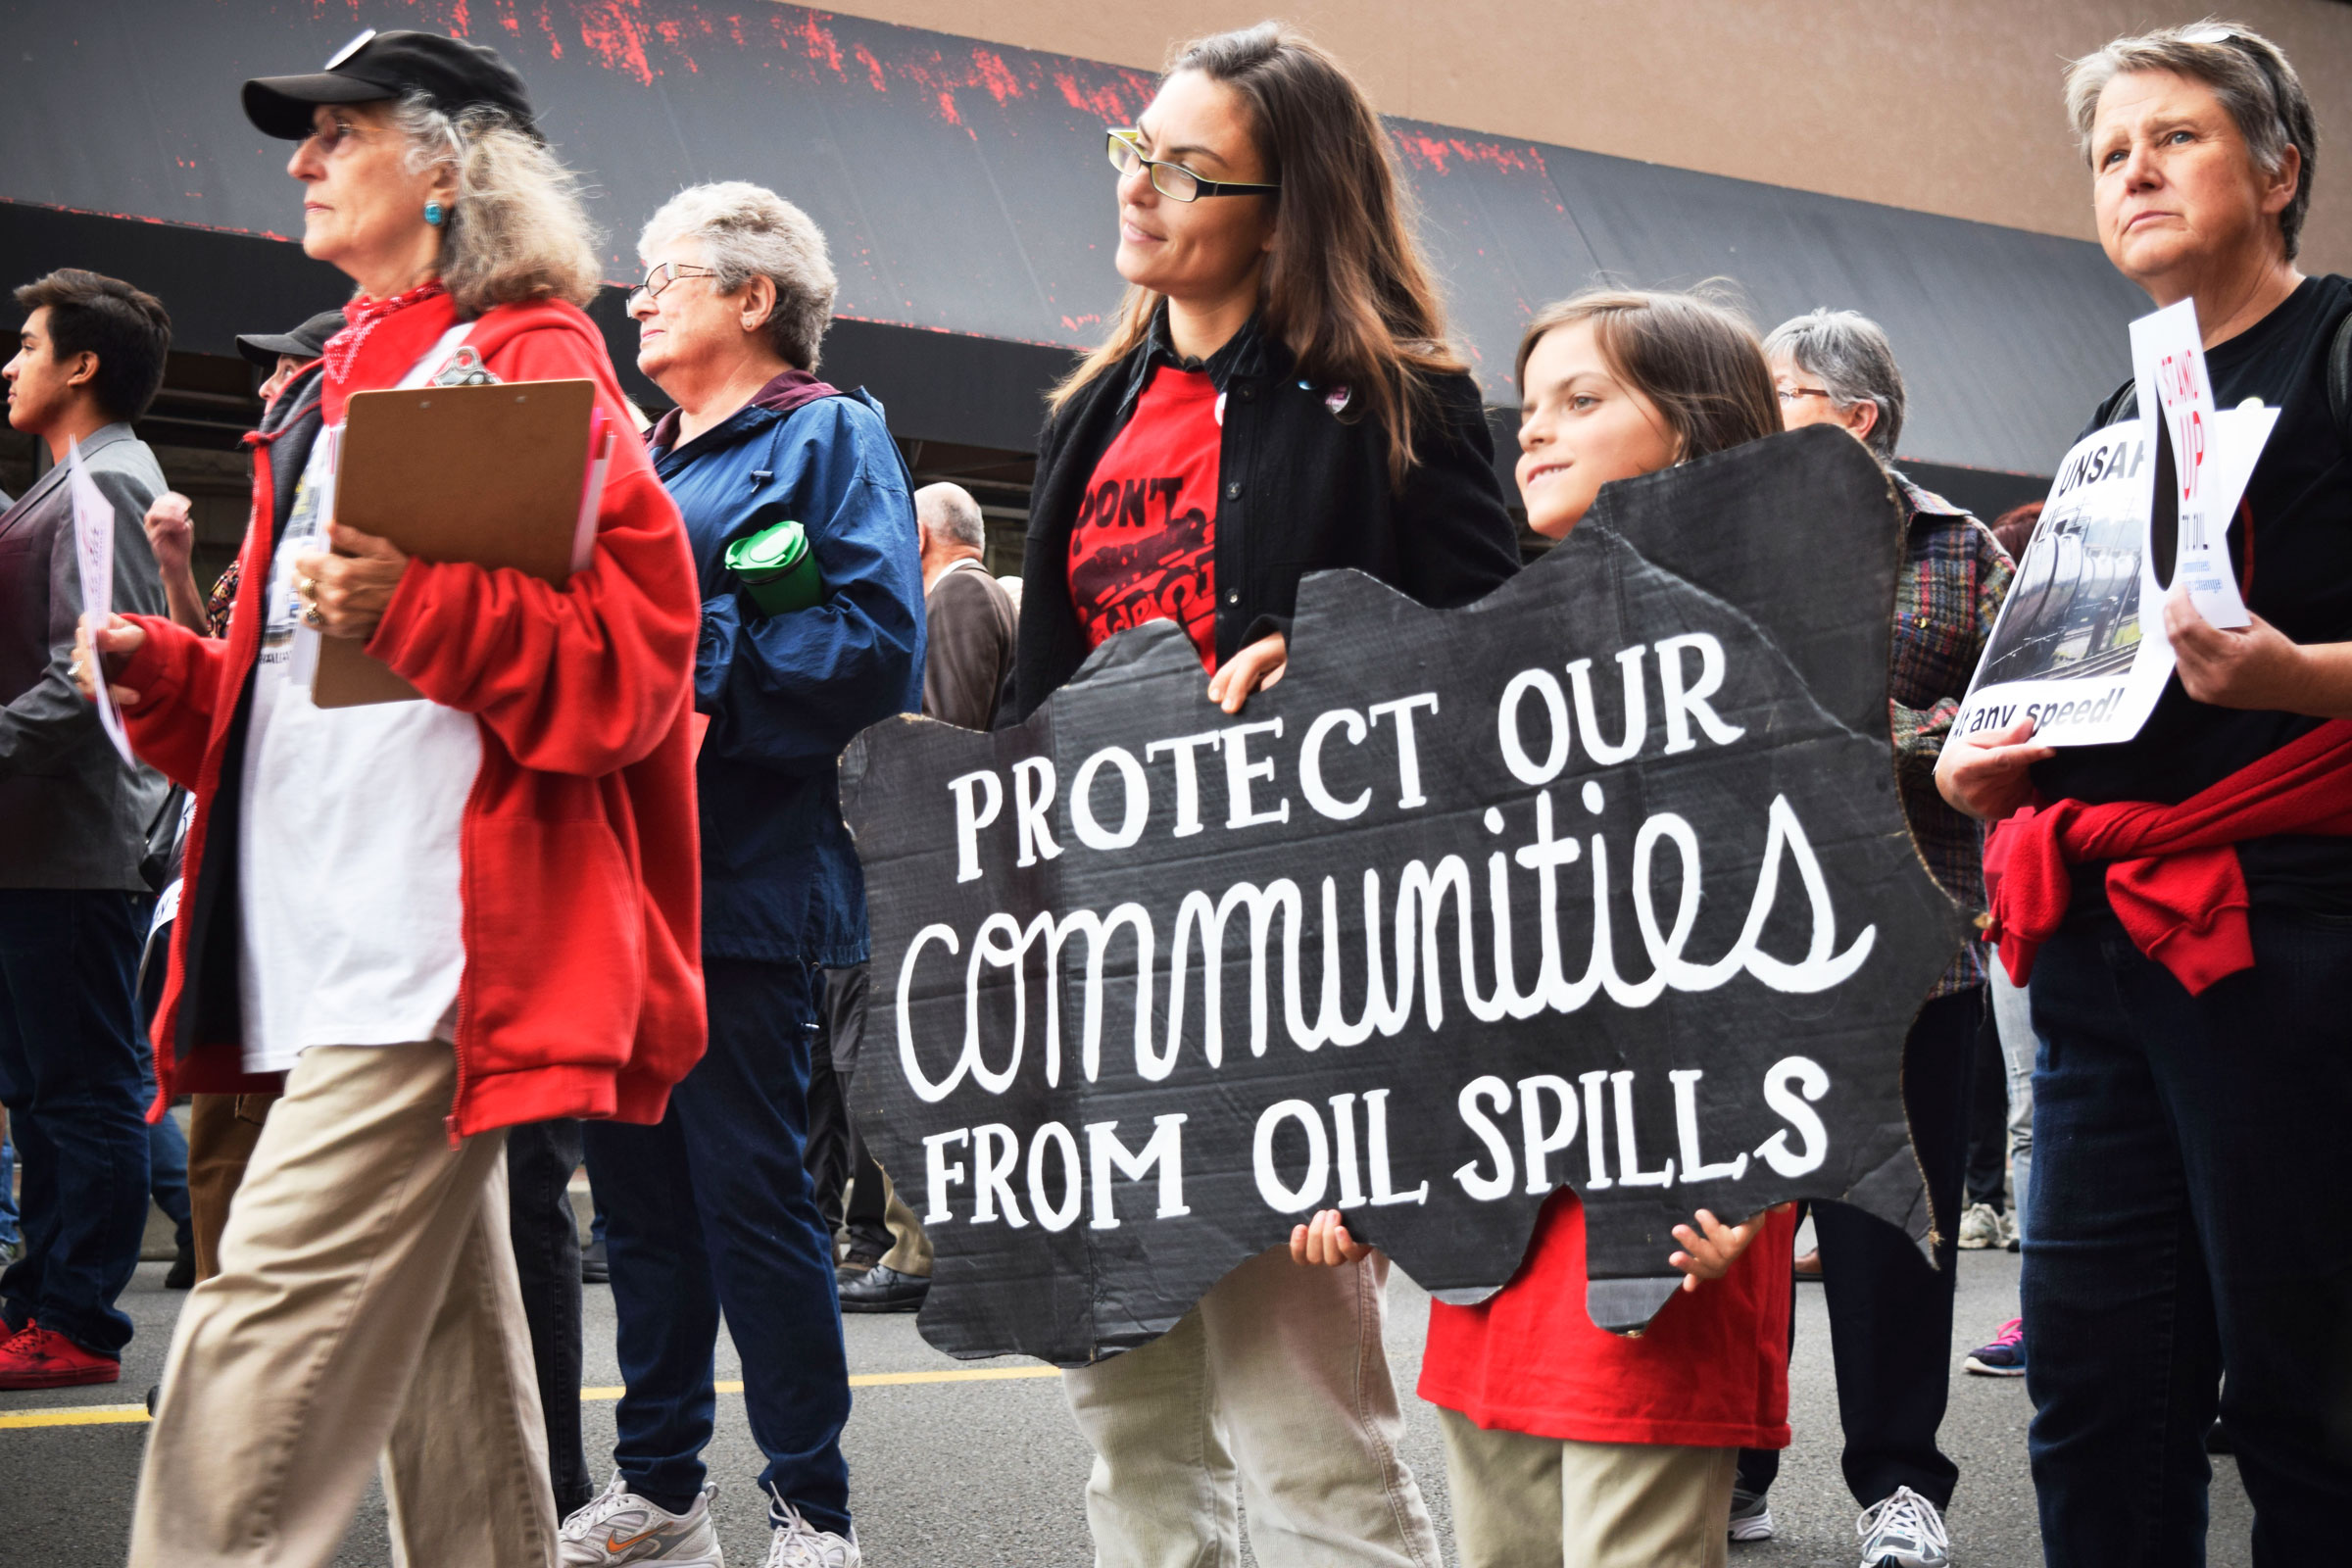 Protestors for Stand Up to Oil. Natalie Jamerson